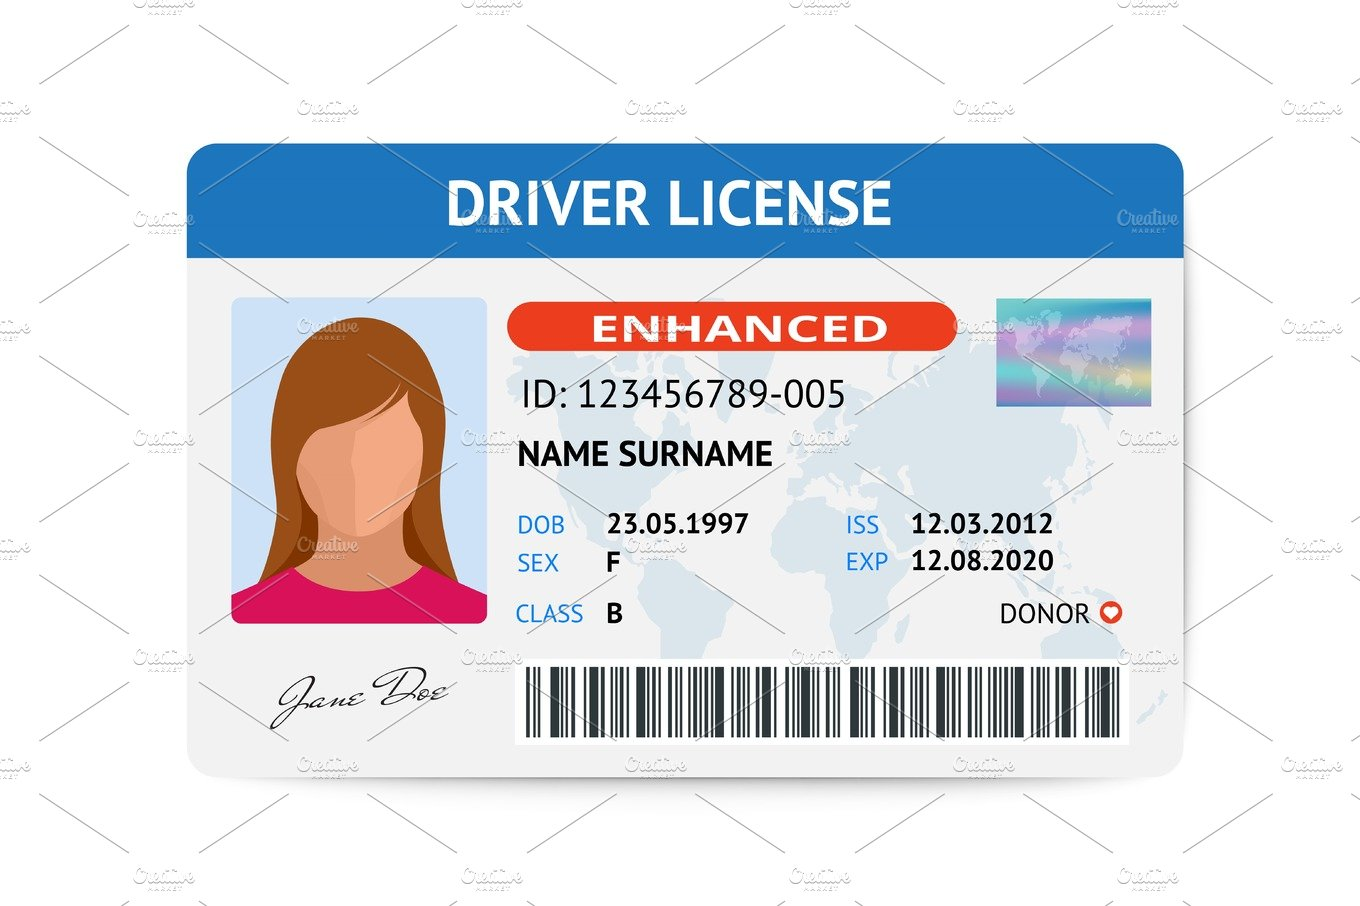 wisconsin drivers license template - cartoon drivers license pictures to pin on pinterest